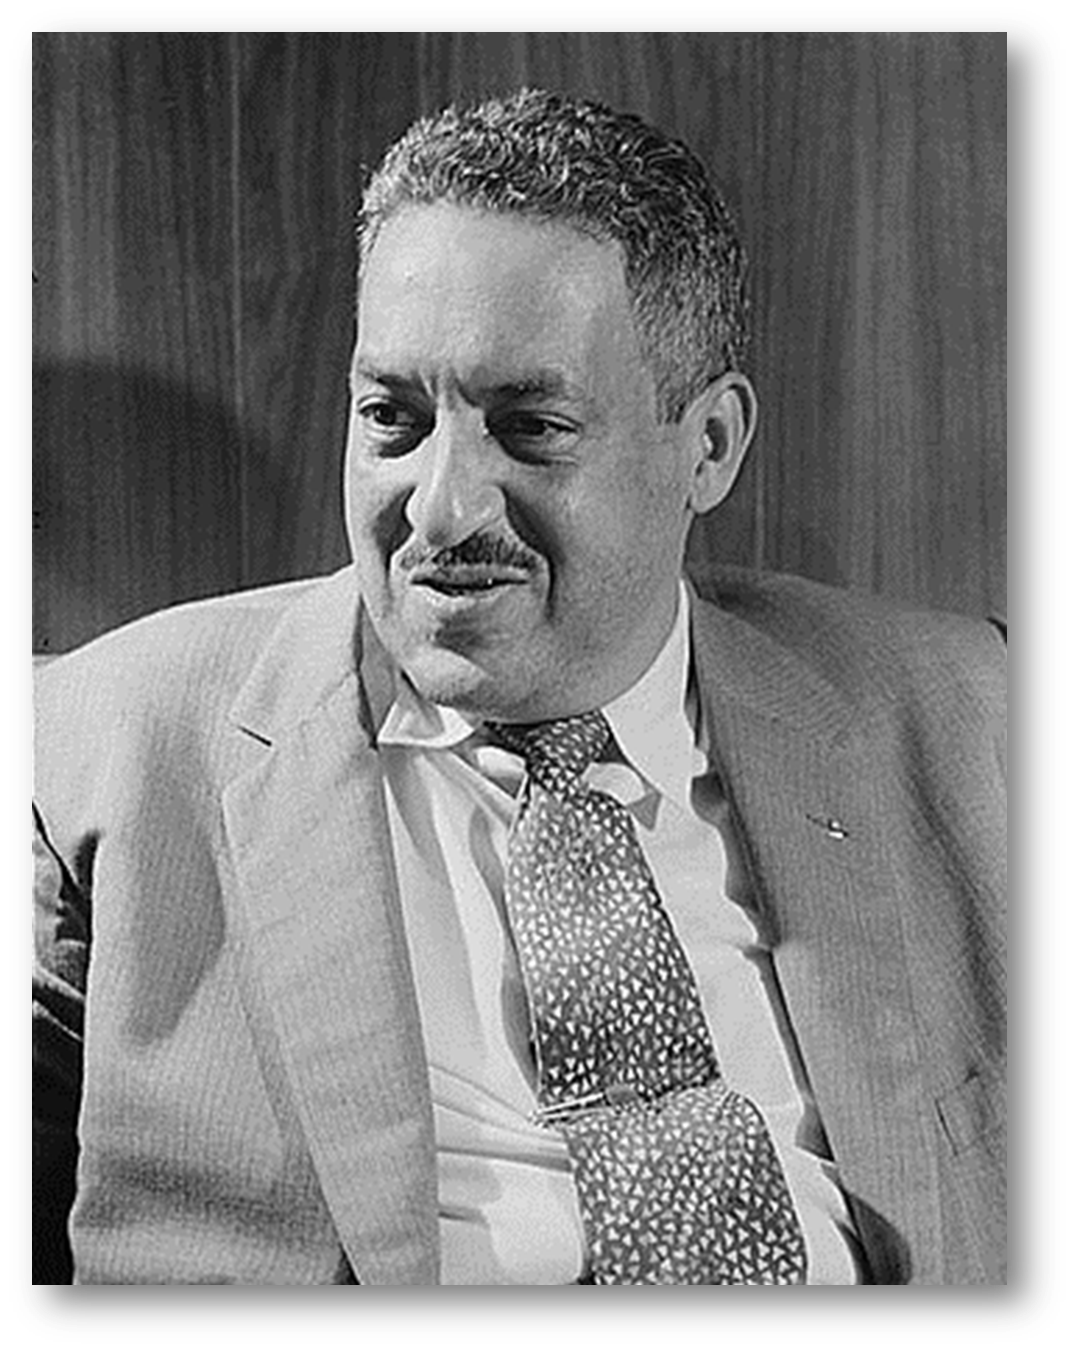 Photo of Thurgood Marshall c. 1957 - click to view Library of Congress catalog record for photo.